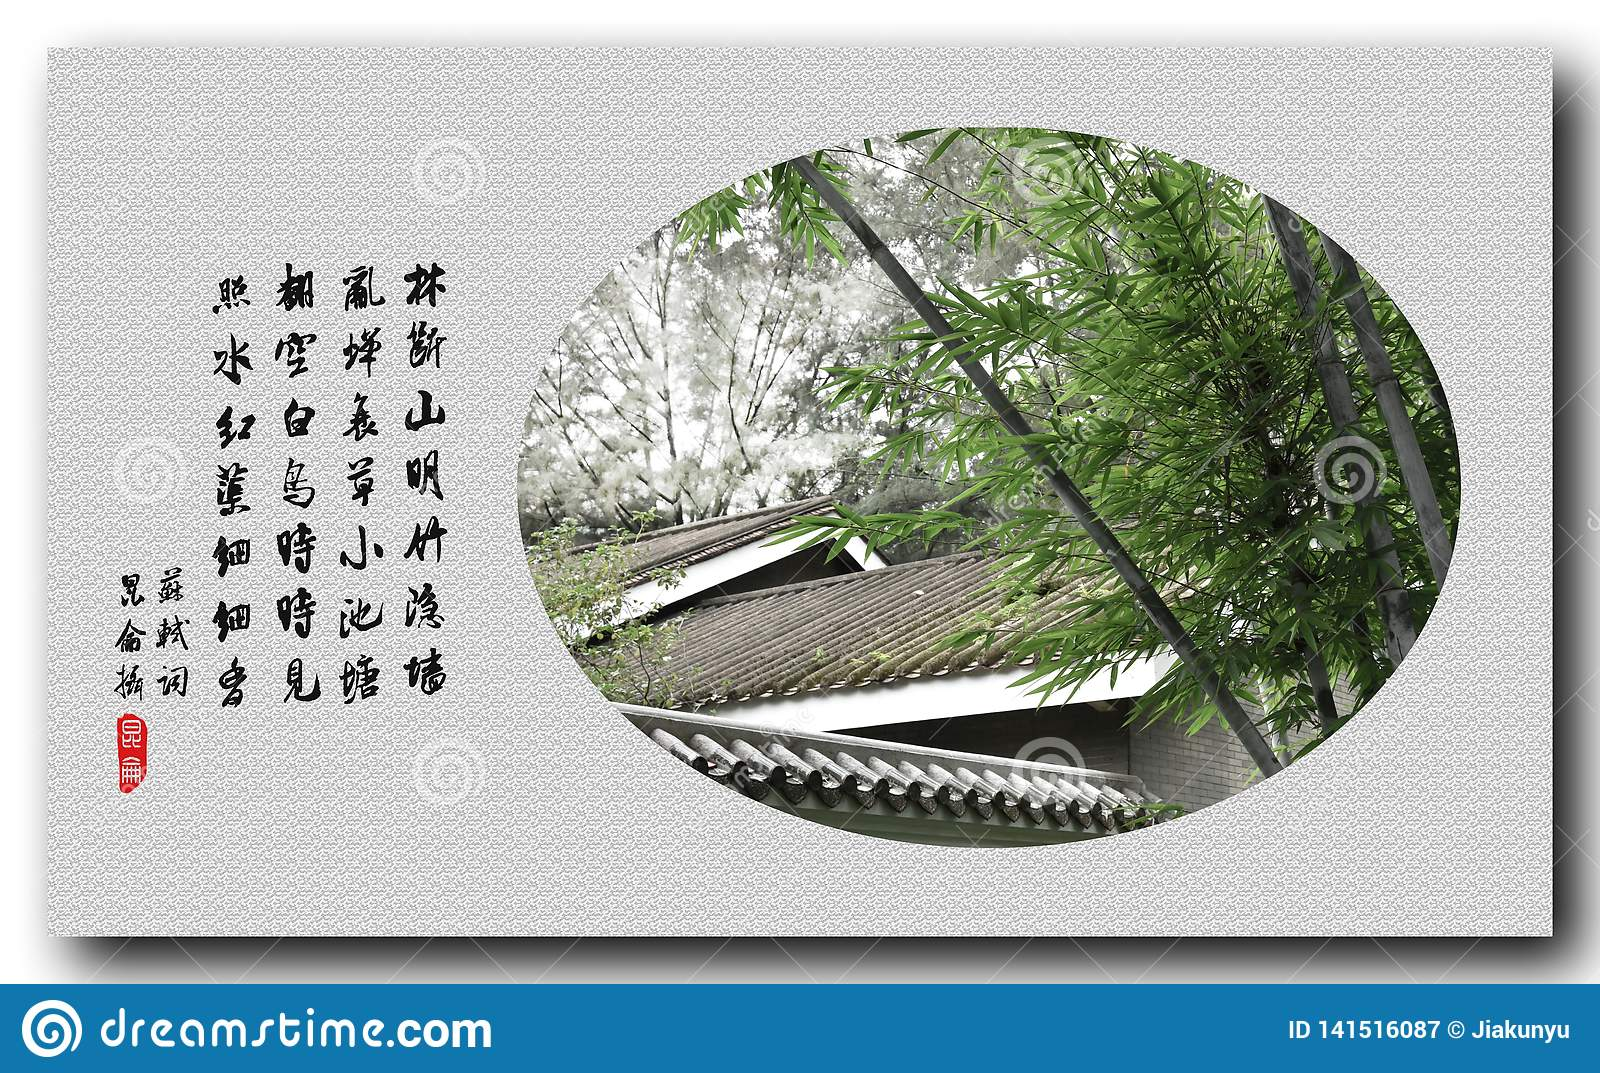 Bamboo with classical Chinese poetry, traditional Chinese painting style.